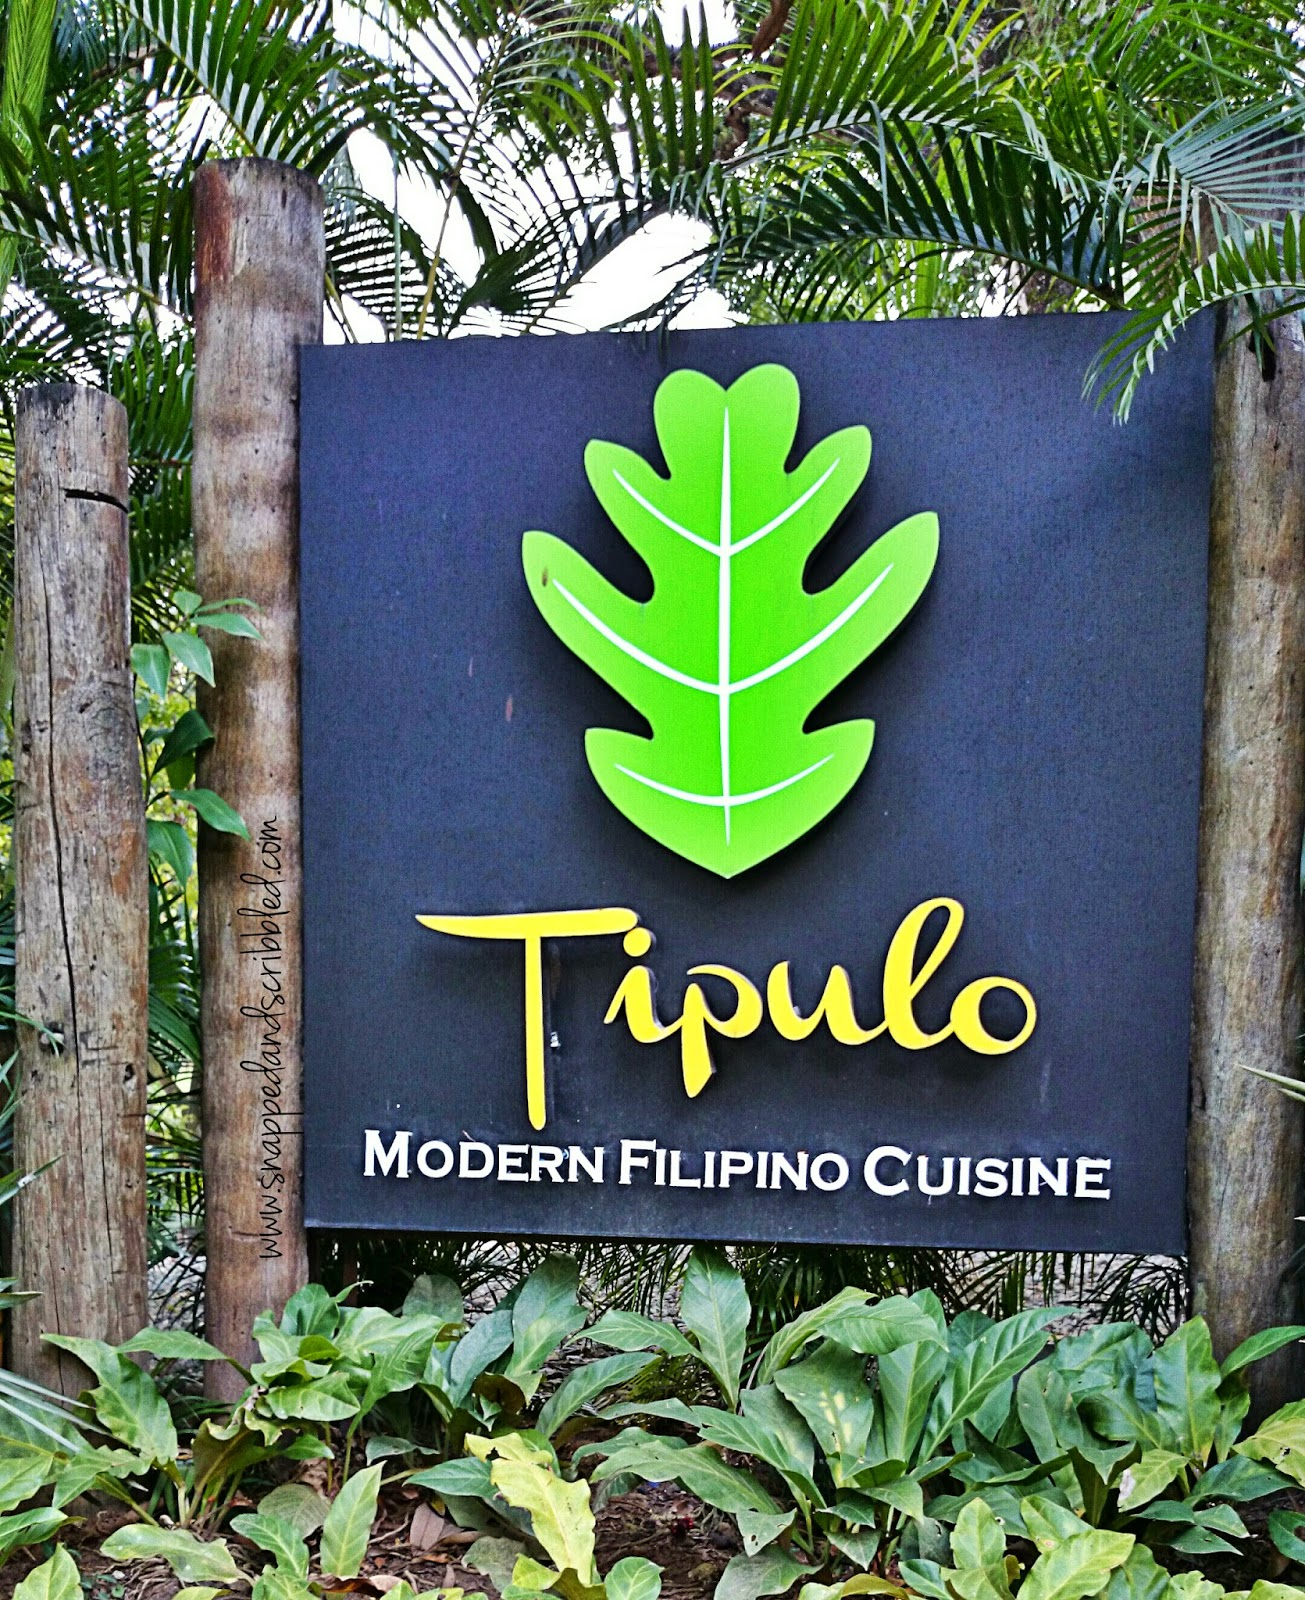 Restaurant In Antipolo: Tipulo Modern Filipino Cuisine